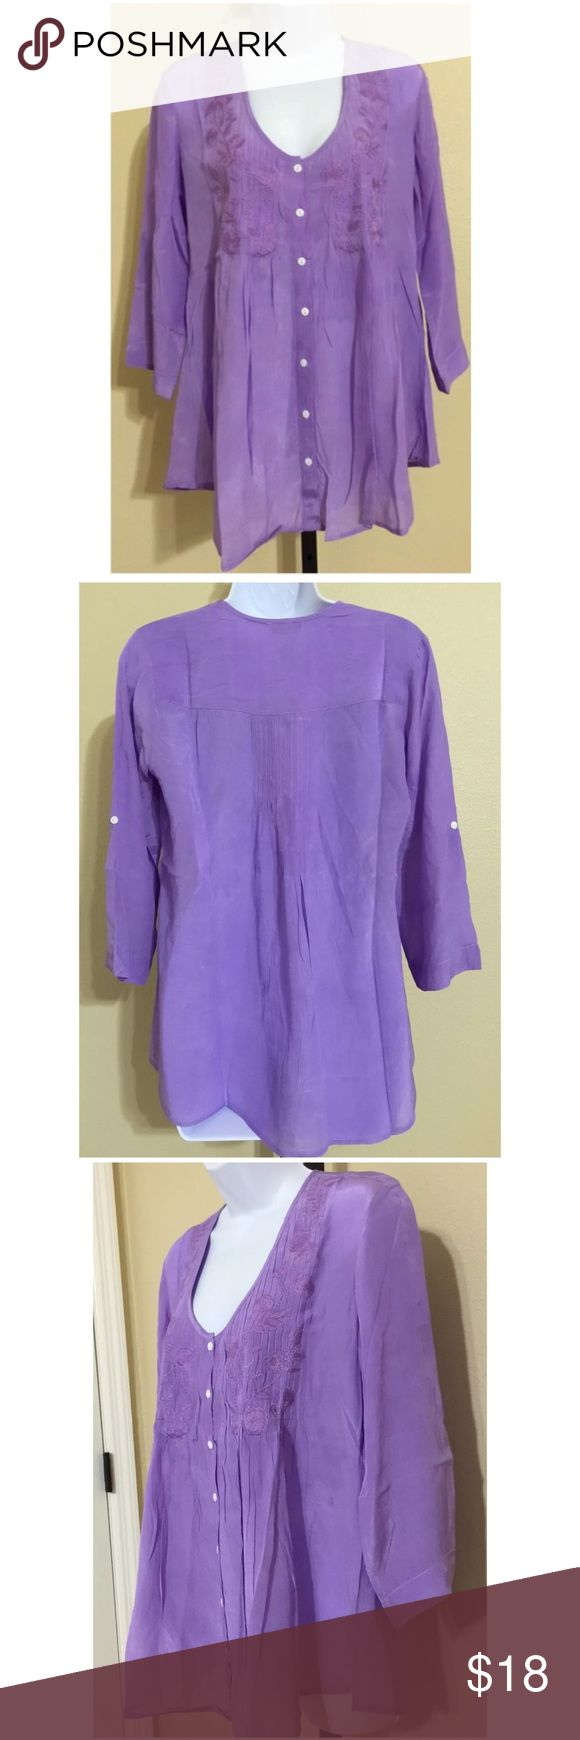 """💥MAKE OFFER💥Kyla Seo Flowy Festival Blouse Flowy Boho Festival Blouse                                               Kyla Seo Lavender Purple 3/4 Sleeve Sleeves can fold and fasten Embroidered Chest detail Size S  19"""" approx armpit to armpit 26"""" approx length 14"""" approx shoulder width NWT‼️5 AVAILABLE ‼️DO NOT PURCHASE LISTING. I WILL CREATE ONE FOR YOU‼️ Kyla Seo Tops Blouses"""